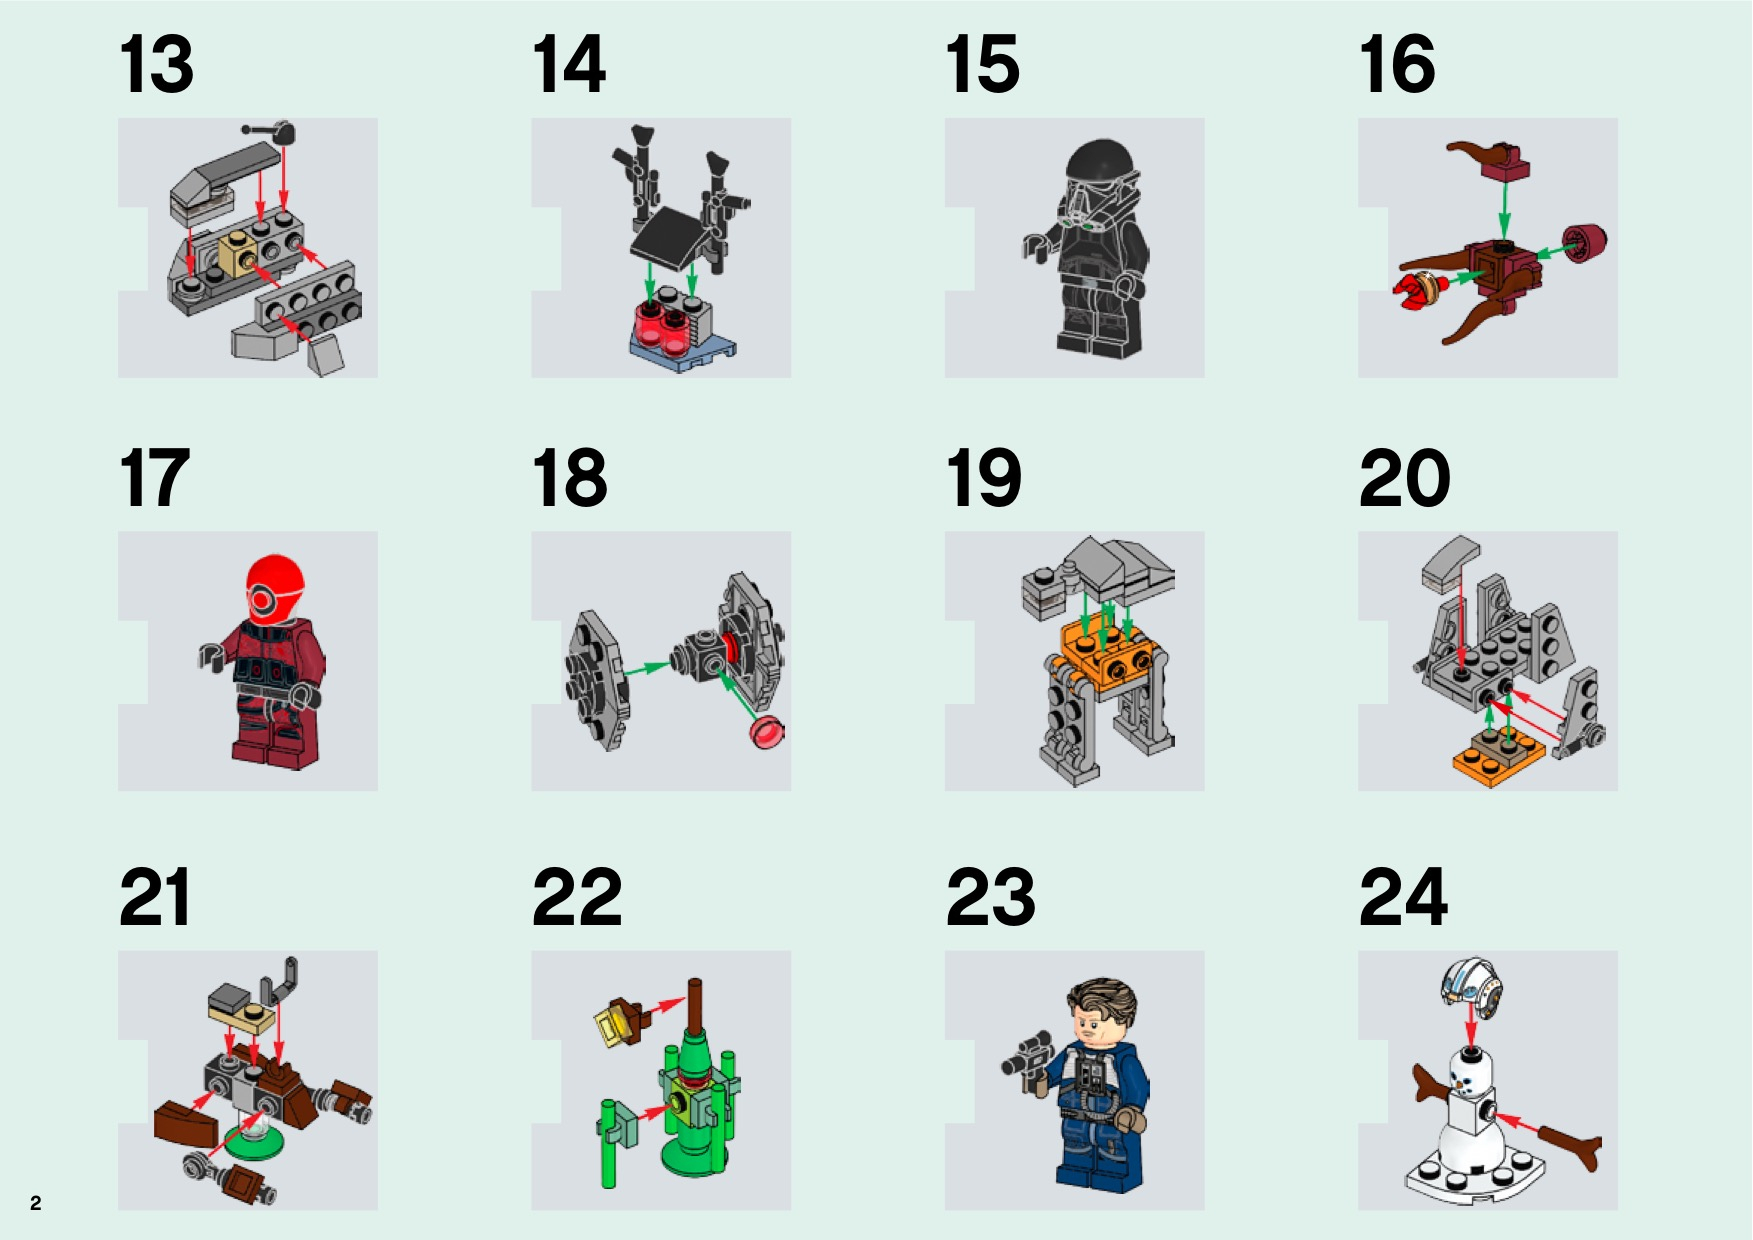 Lego 75213 Star Wars Advent Calendar Instructions, Star Wars within Lego 75213 Instructions